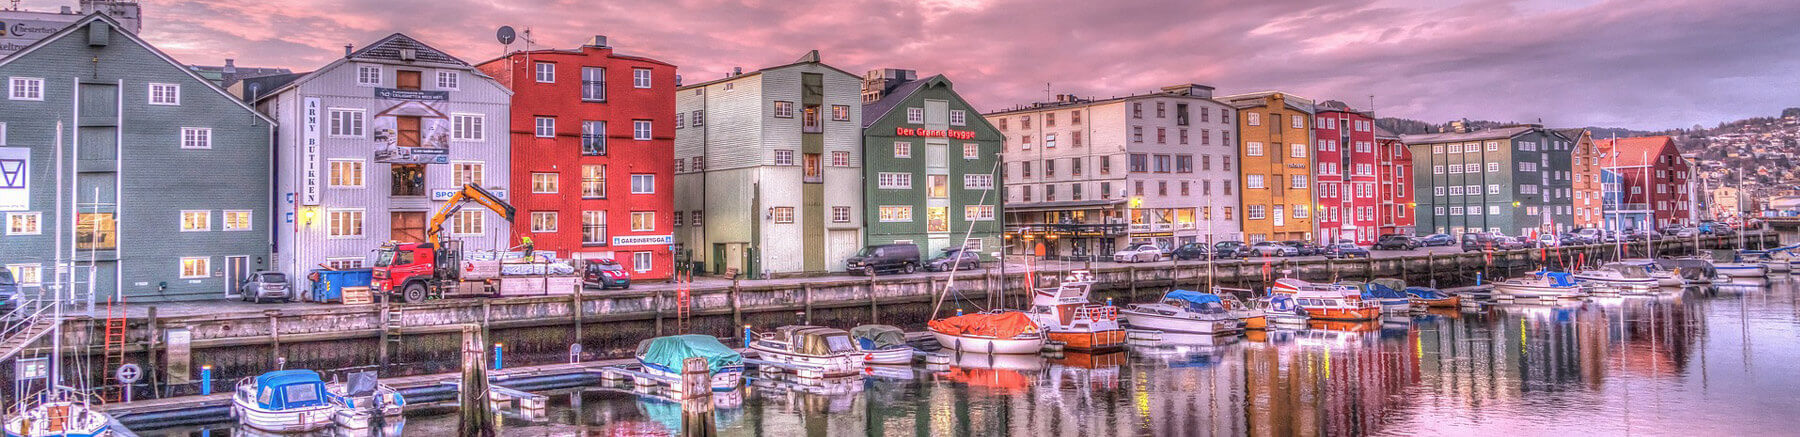 Colourful houses at the harbour in Trondheim, Norway